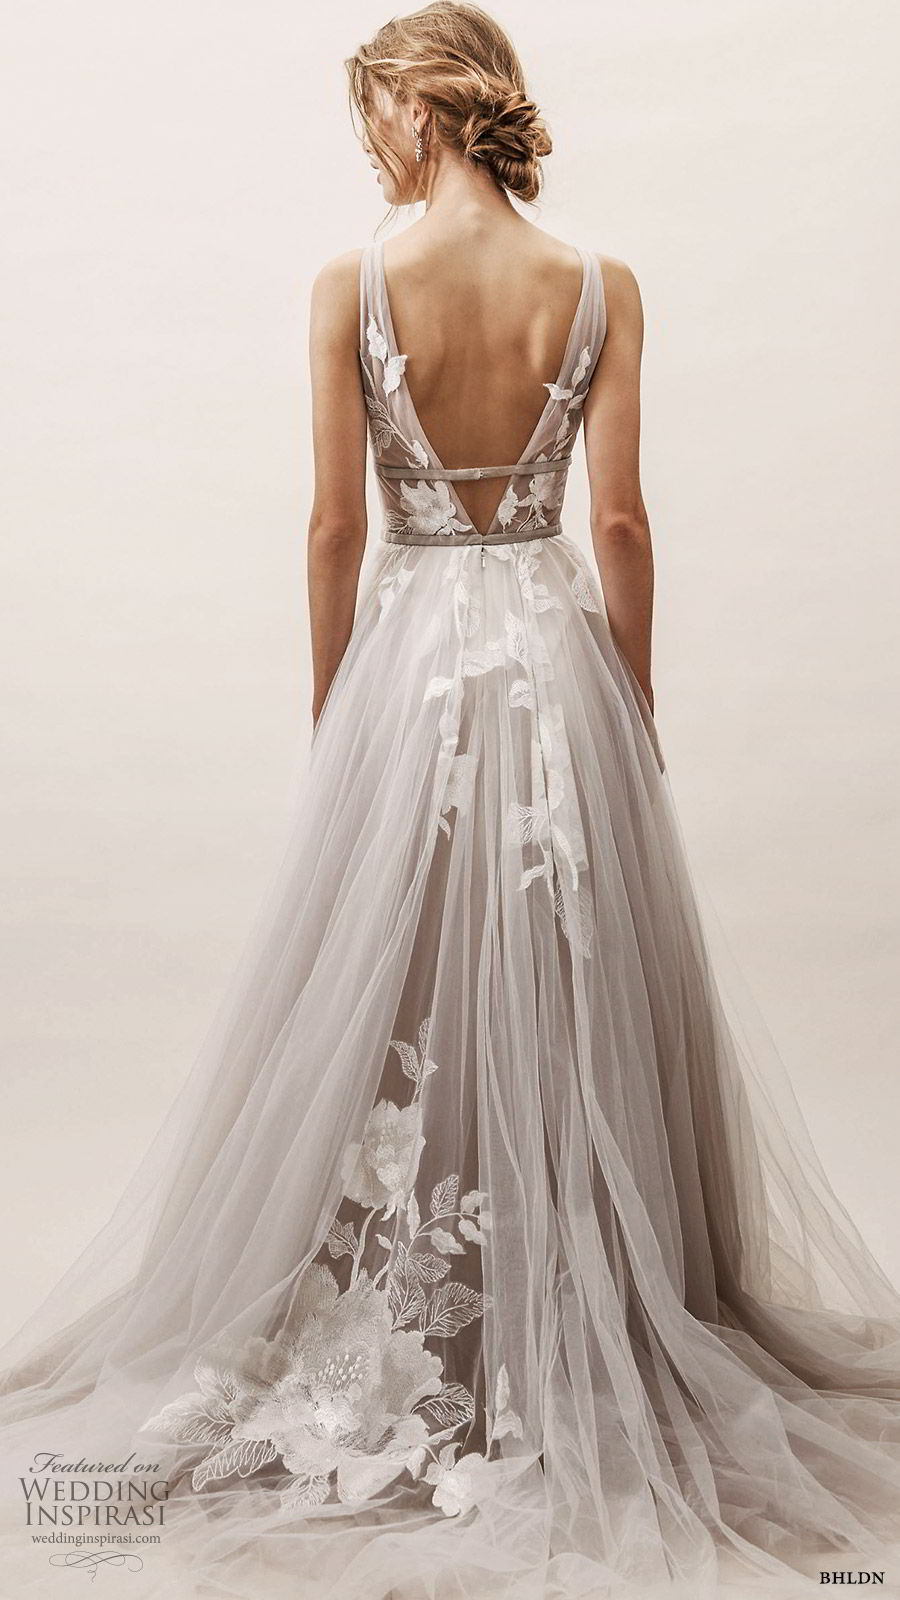 bhldn spring 2019 bridal sleeveless thick straps v neckline embellished bodice a line ball gown wedding dress sweep train silver color low vback romantic (18) bv